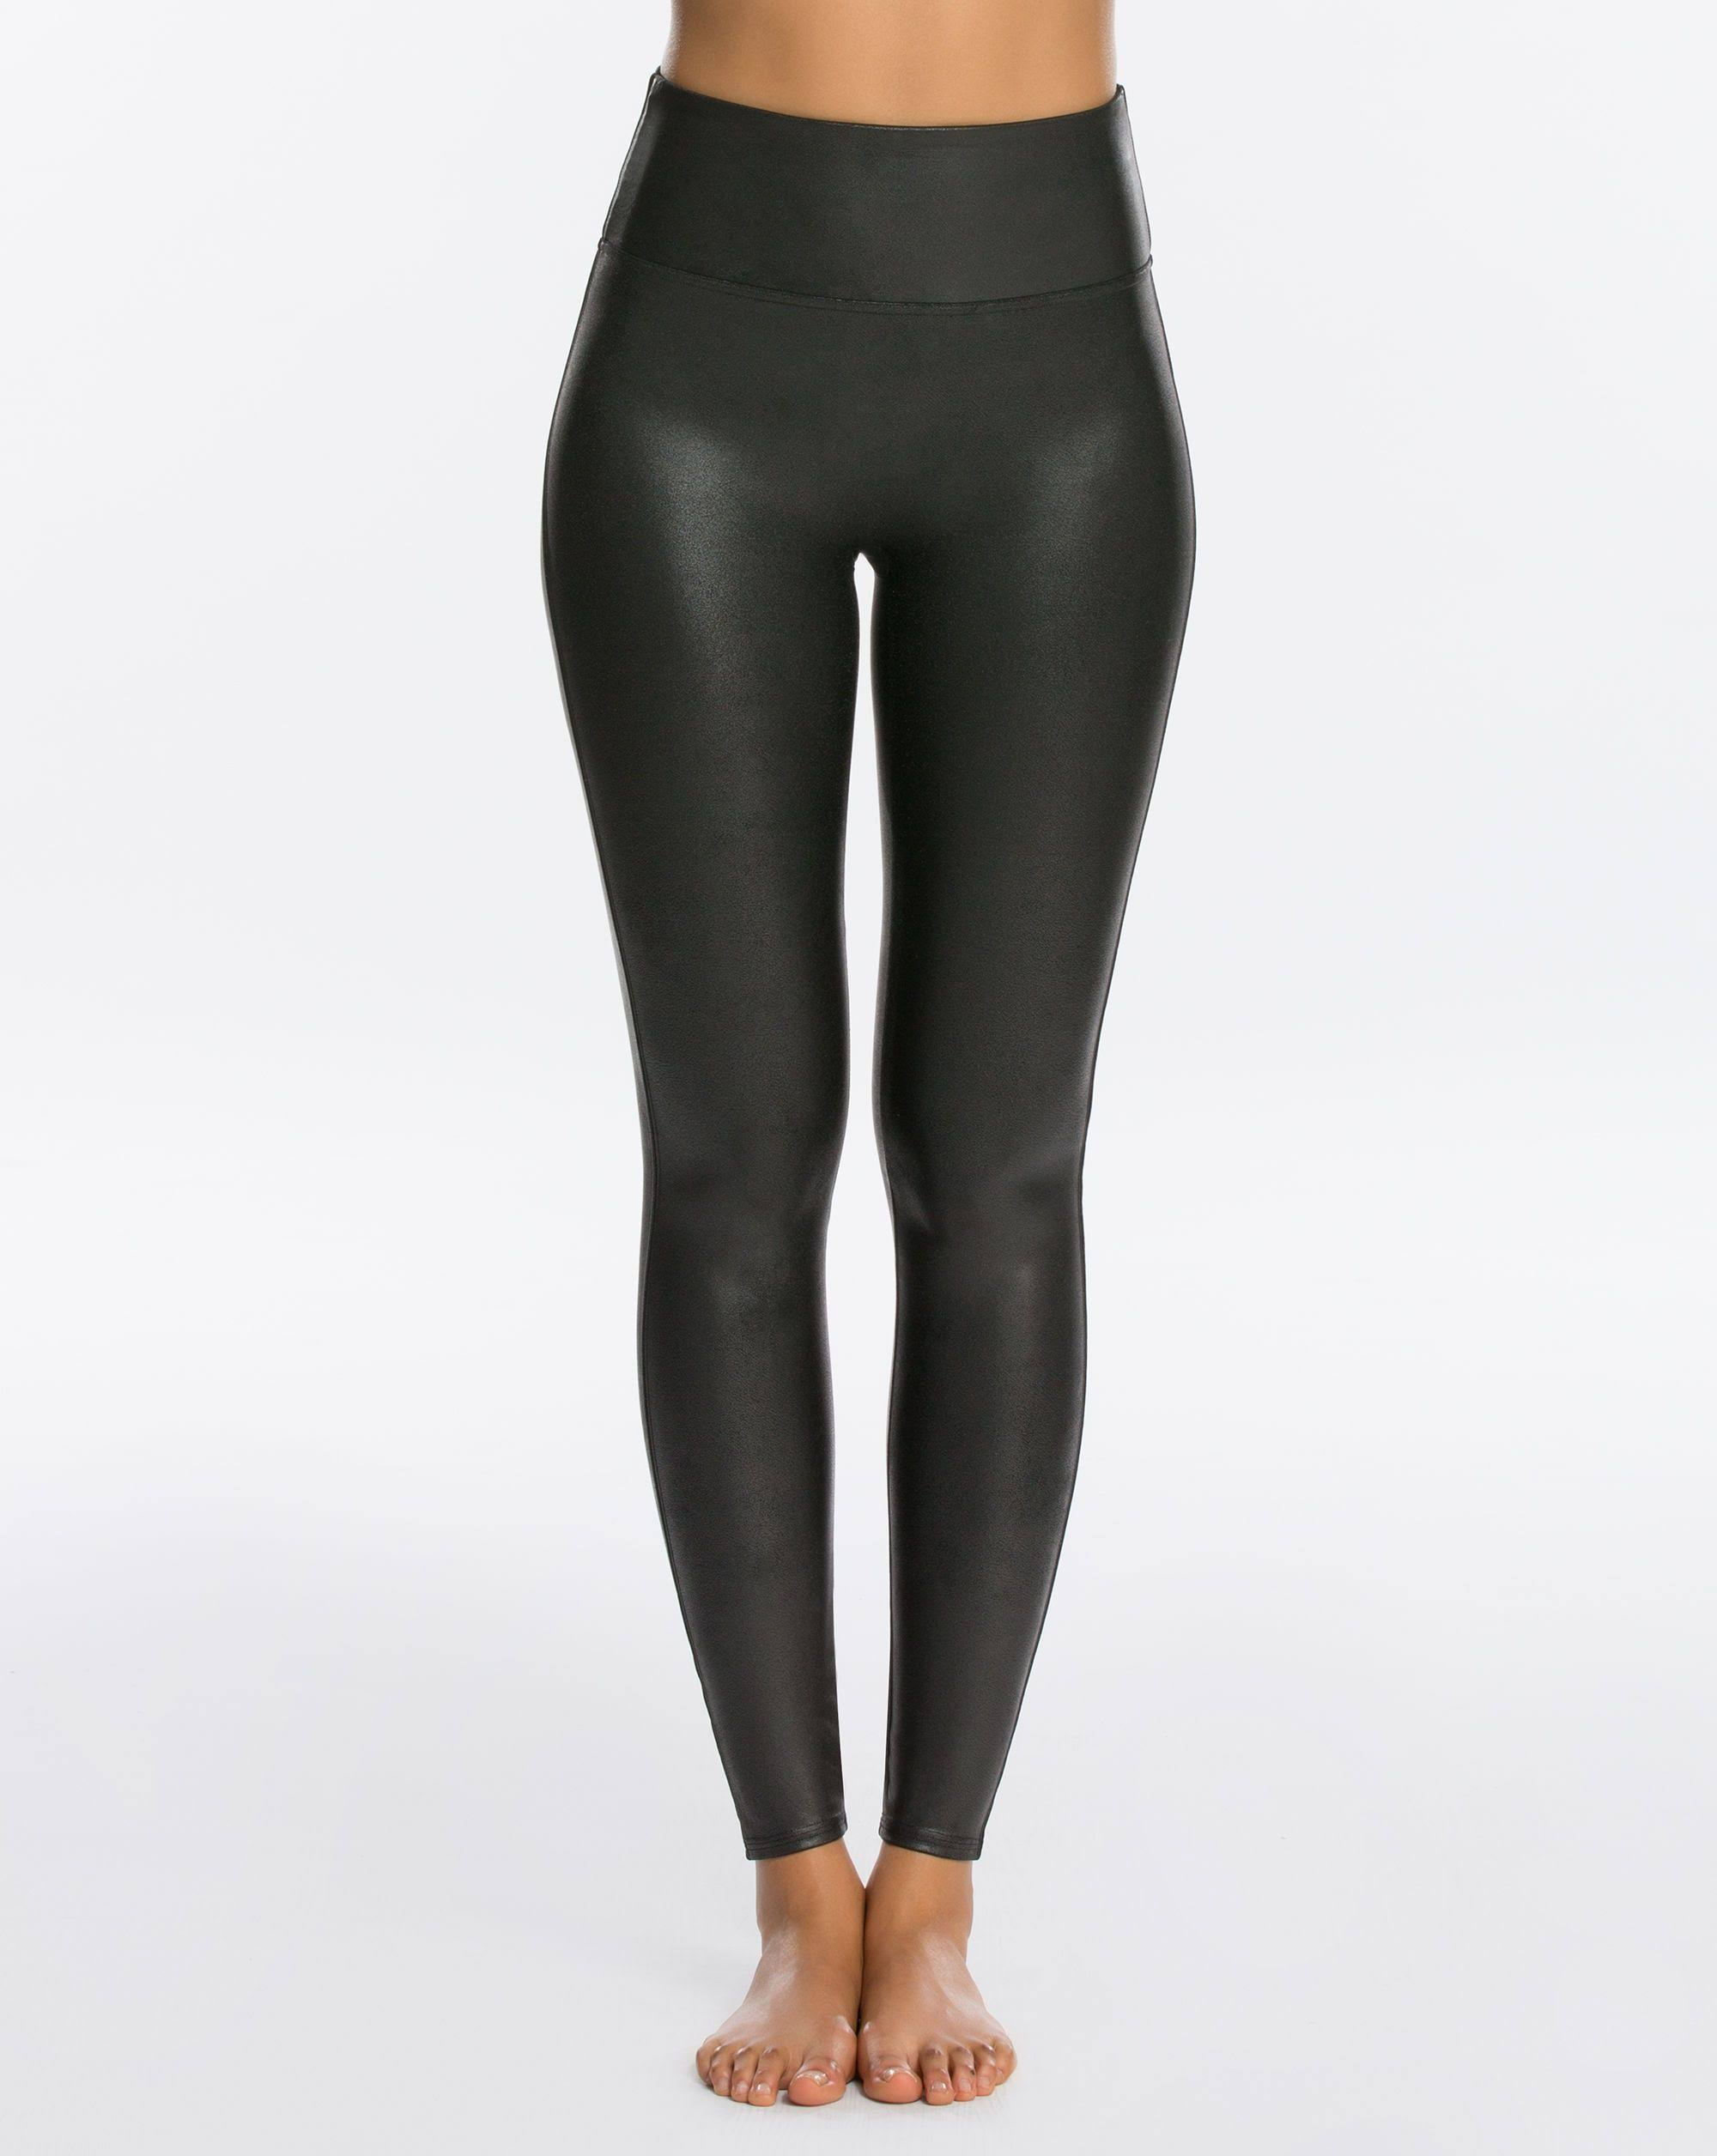 Spanx Faux Leather Hi Rise Leggings - Black, X Large